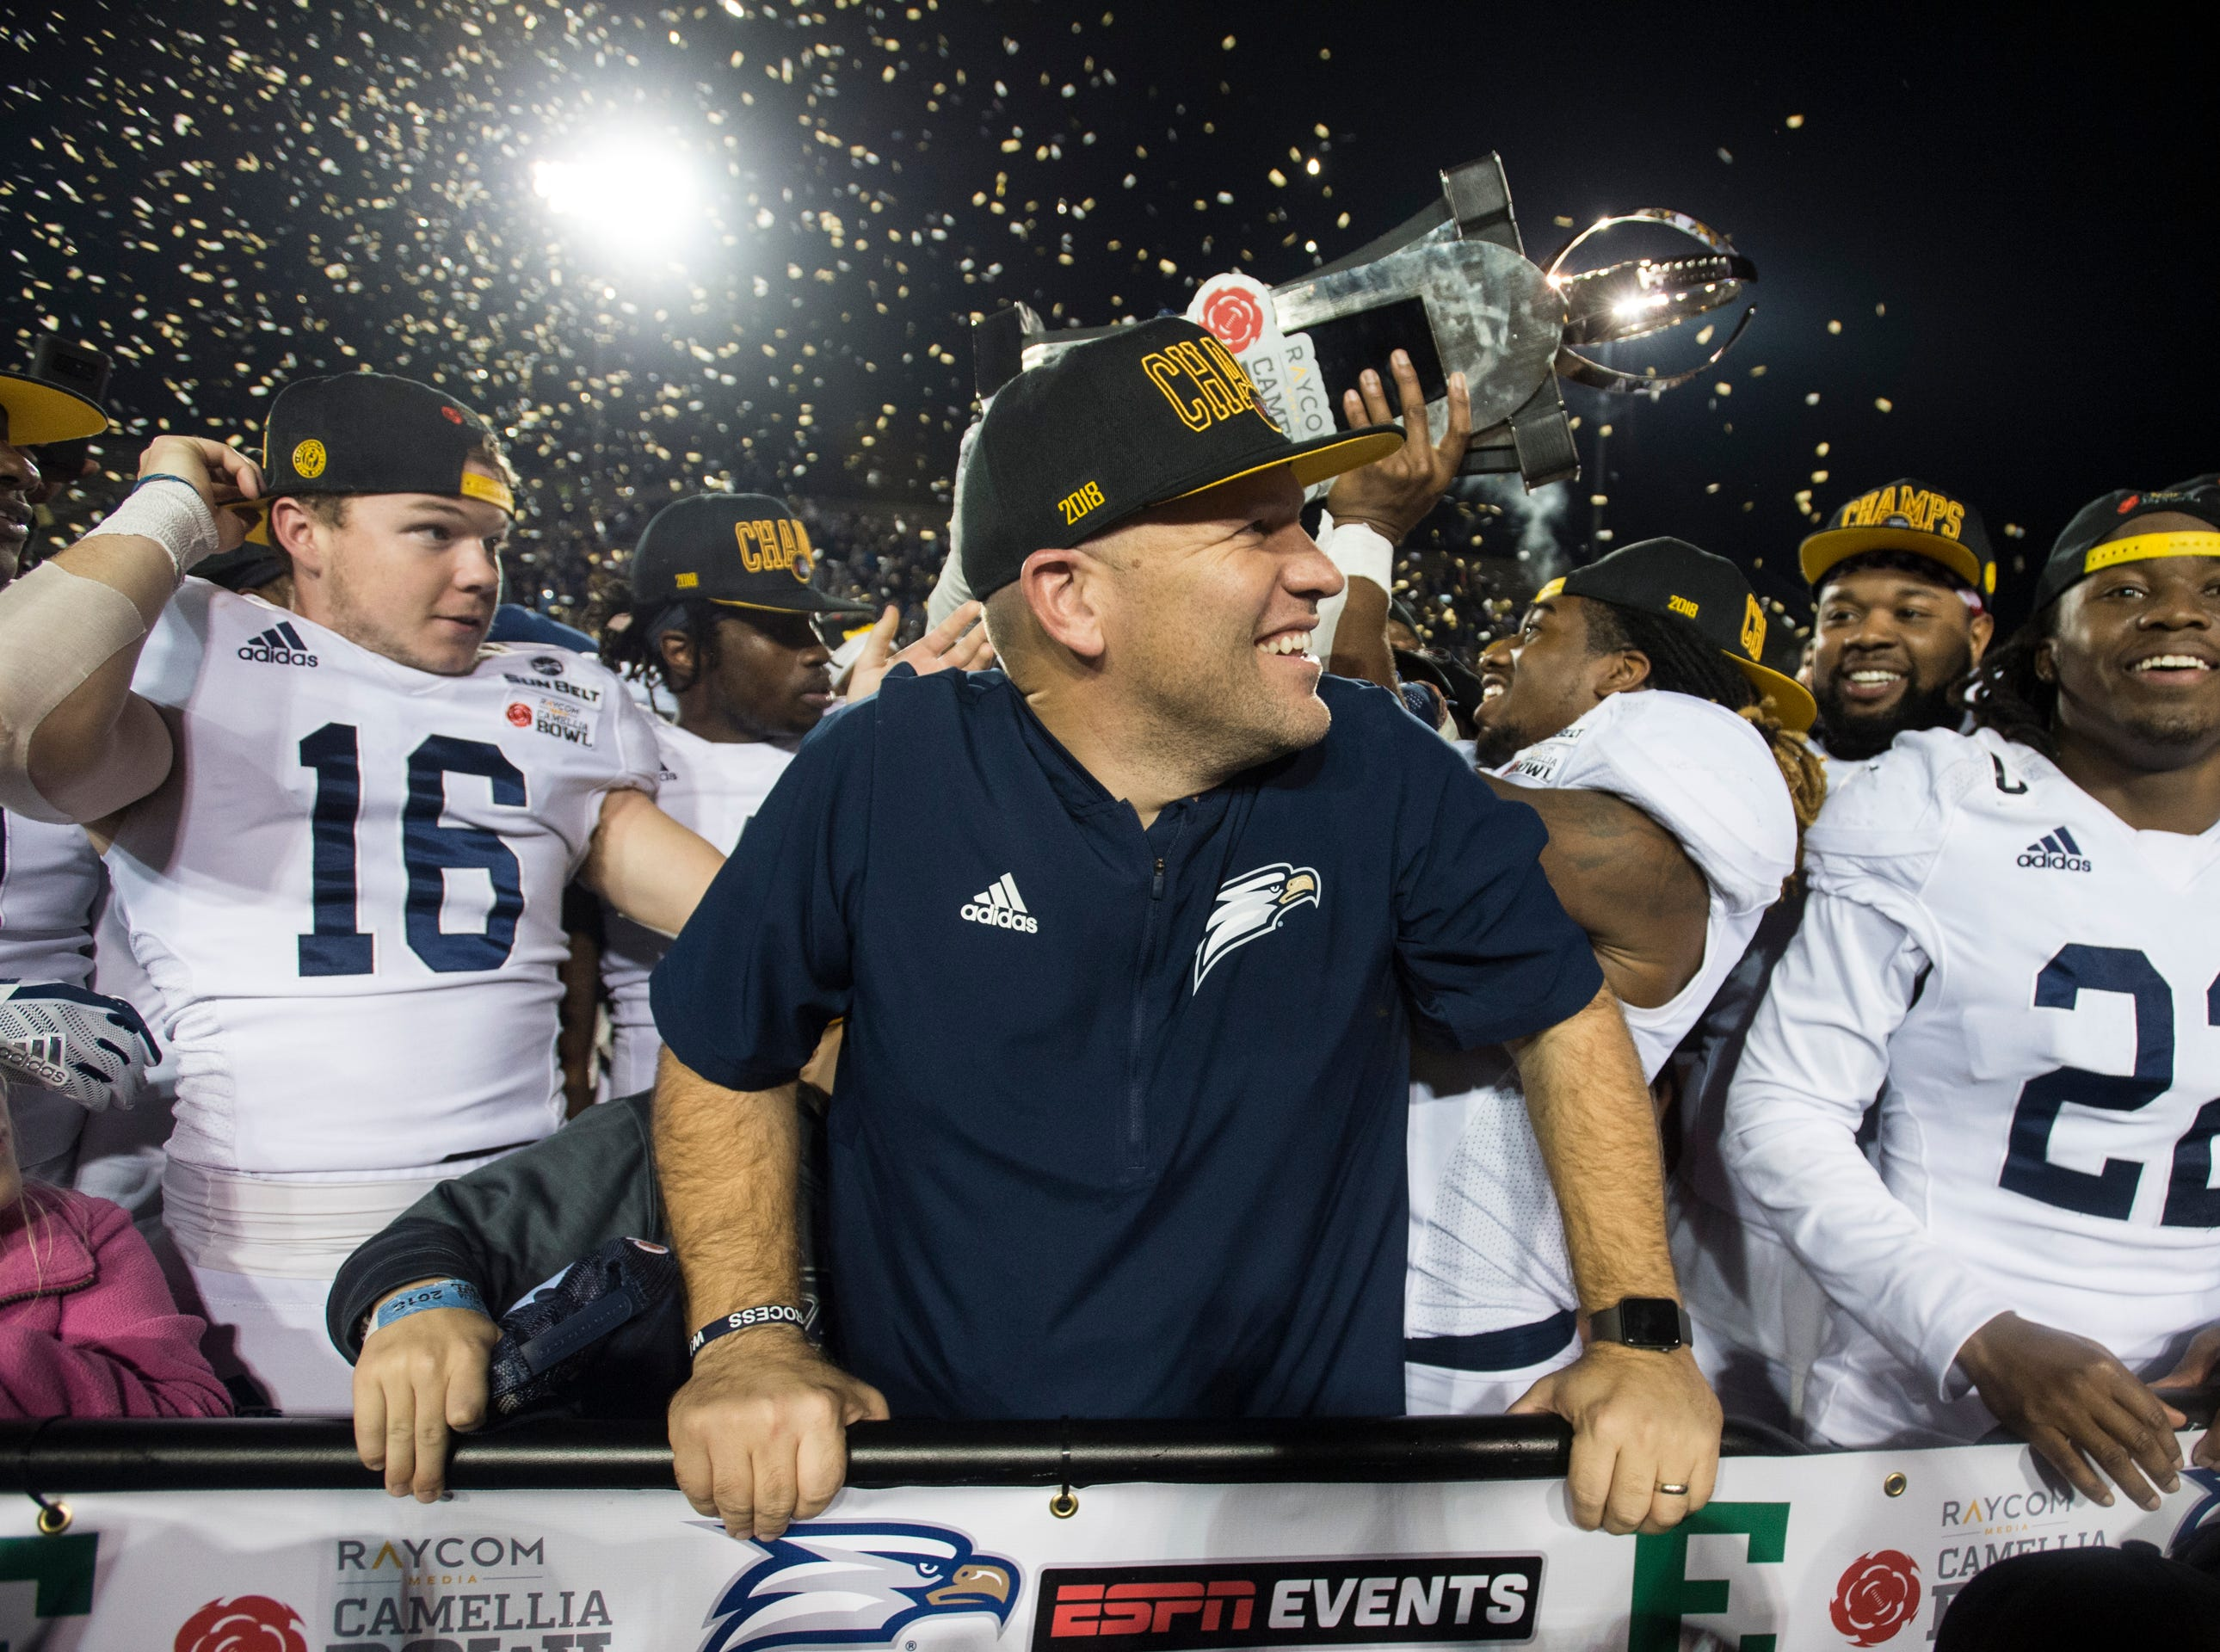 Georgia Southern head coach Chad Lunsford celebrates with his team after winning the Camellia Bowl at Cramton Bowl in Montgomery, Ala., on Saturday, Dec. 15, 2018. Georgia Southern defeated Eastern Michigan 23-21.